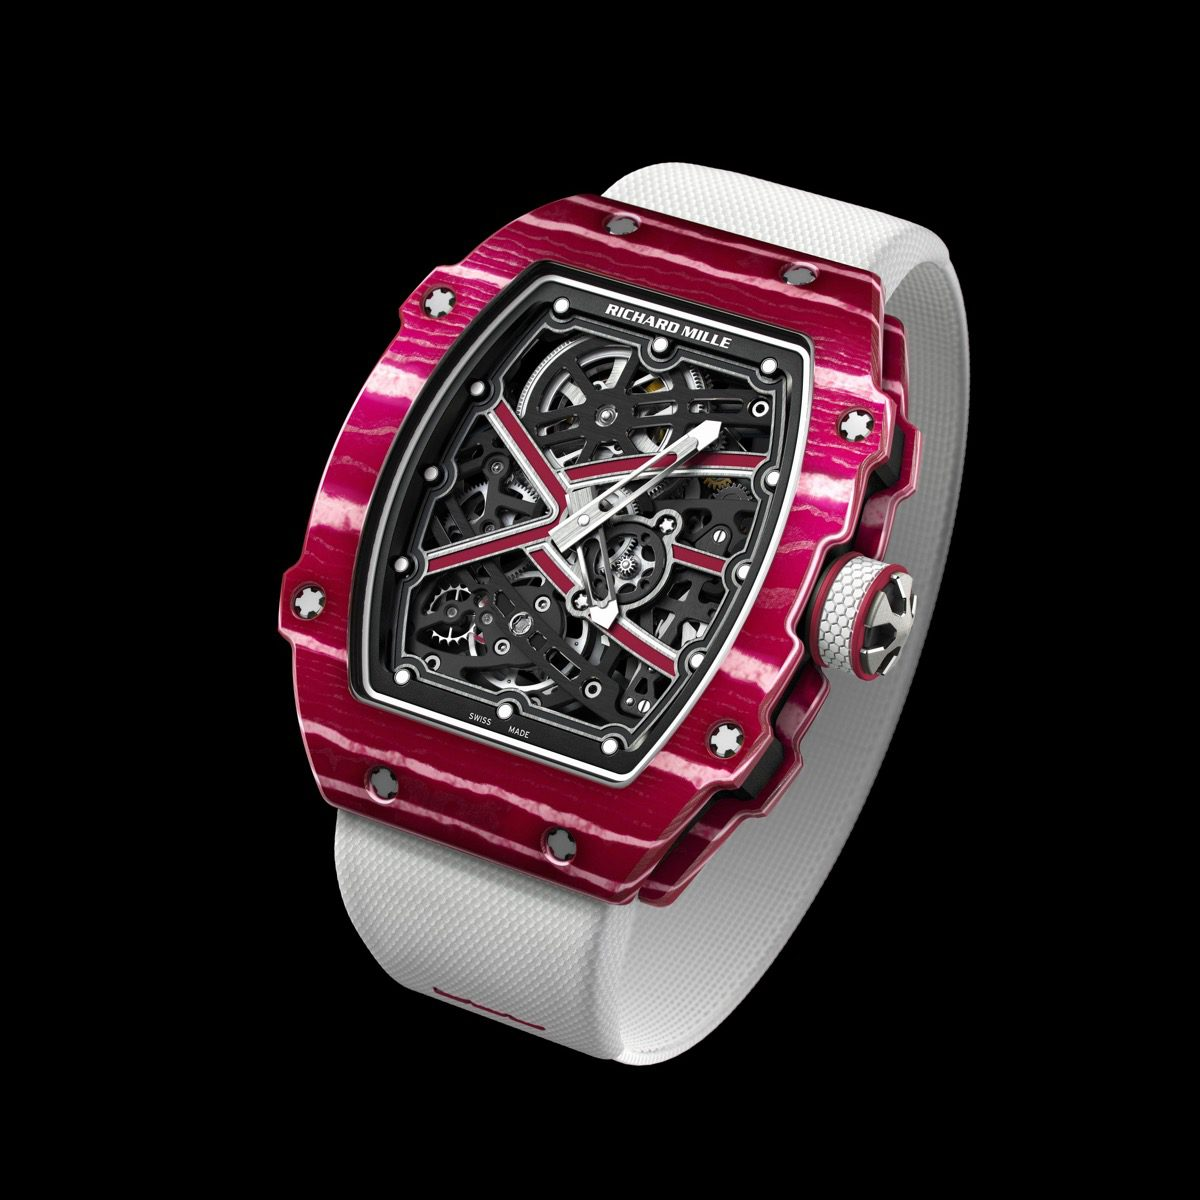 Richard Mille RM 67-02 Automatic Winding Extra Flat – Mutaz Barshim Edition Replica Watch